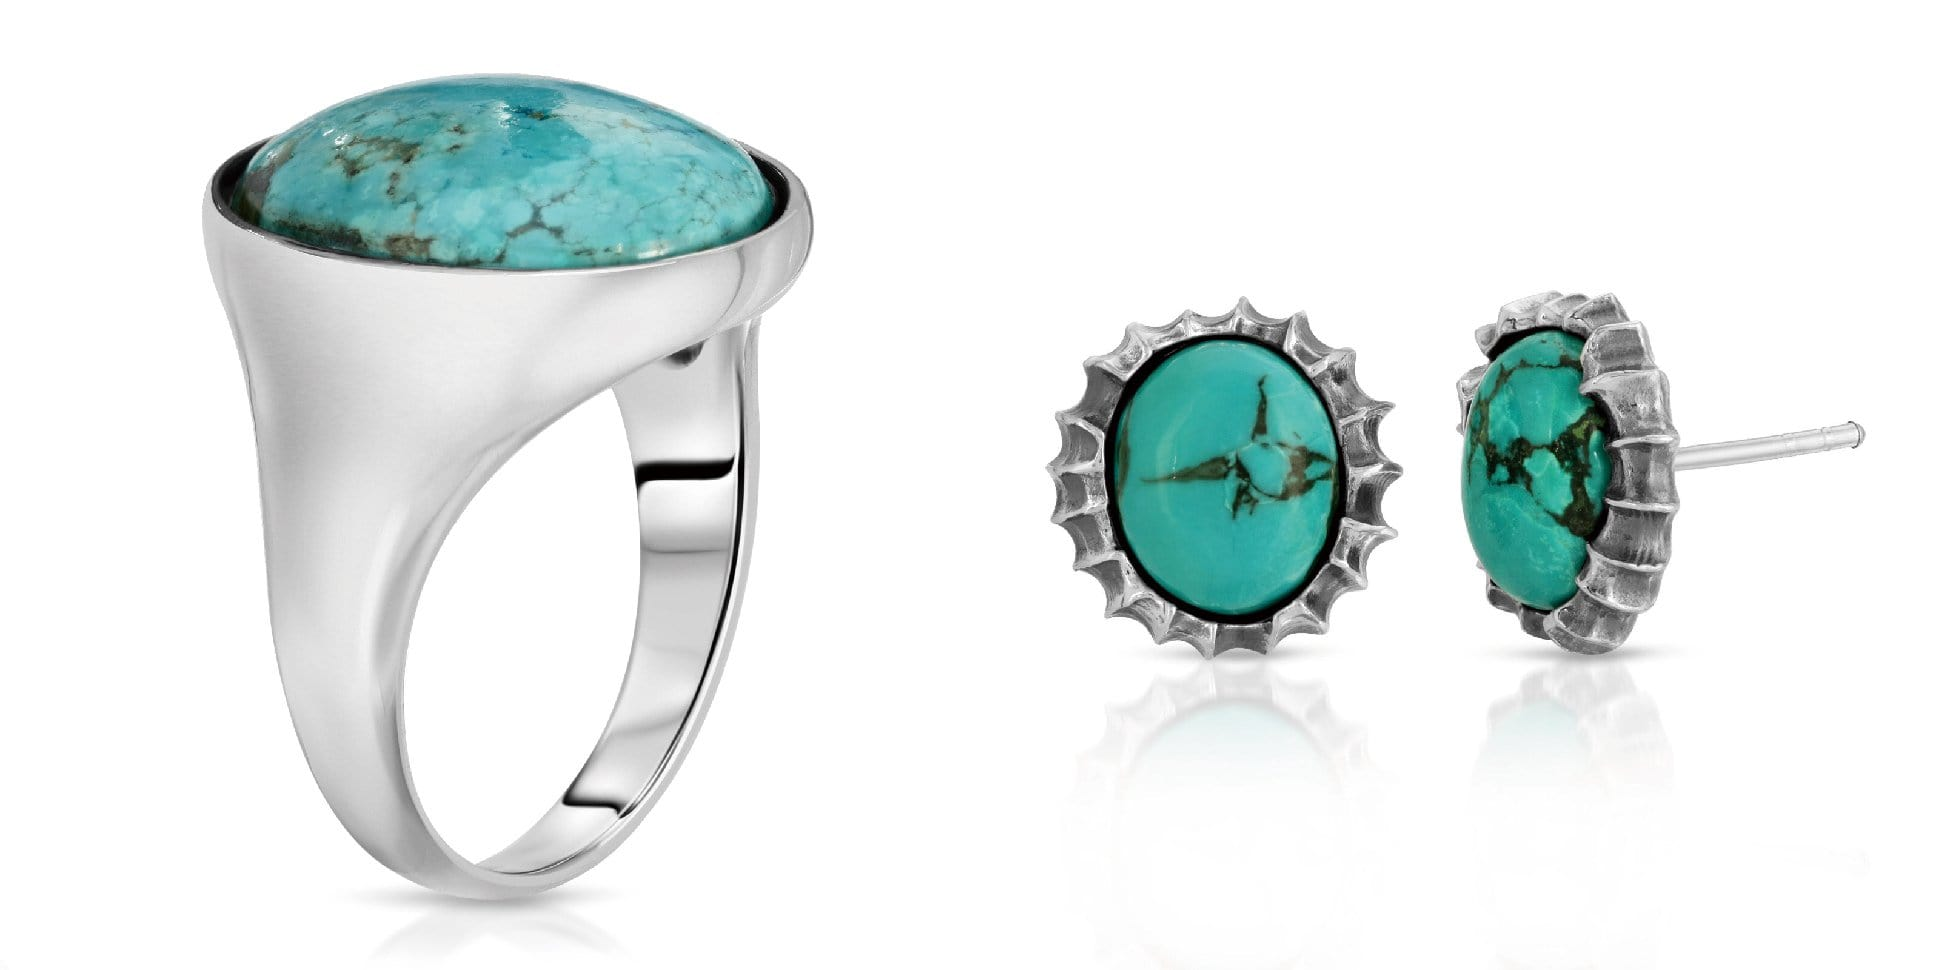 The W Brothers blue turquoise ring and sunshine earrings bundle set, A Grade 925 sterling silver turquoise ring earrings AA Grade Turquoise precious gemstone collection, thewbros gemstone bundle set deals collection